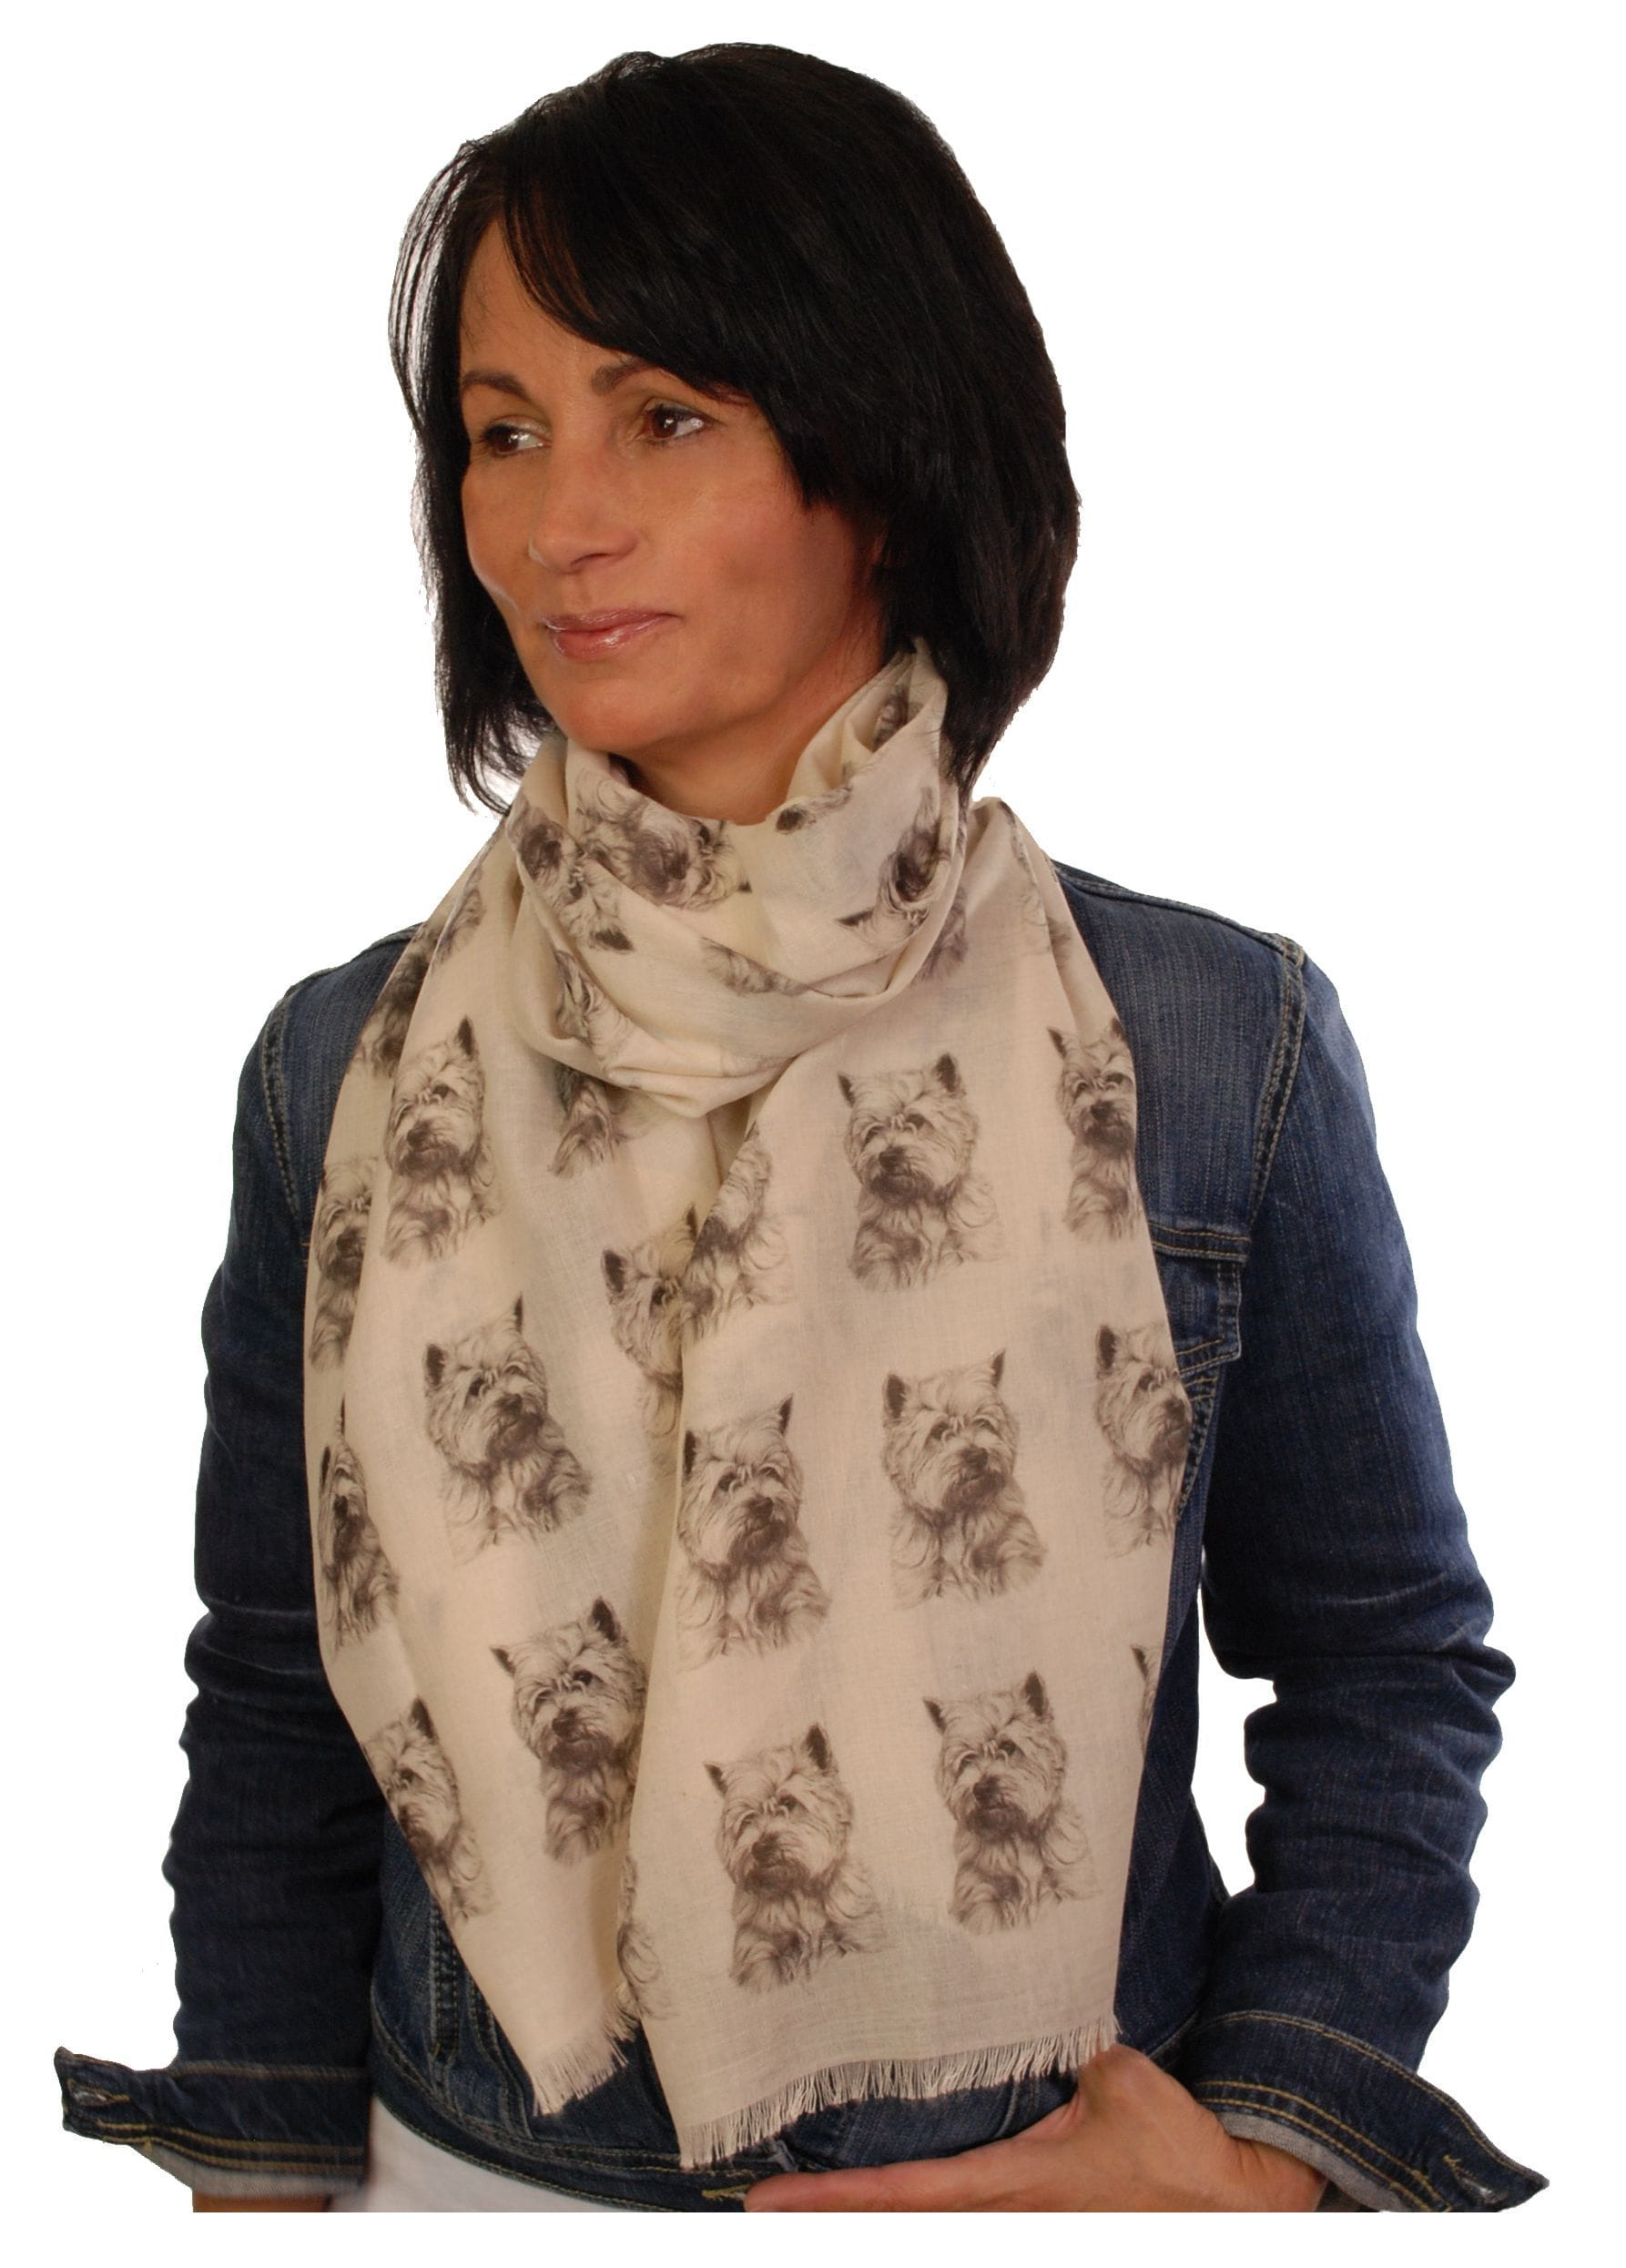 West Highland Terrier Scarf - Mike Sibley Westie Design Ladies Fashion Scarf - Hand Printed In The UK